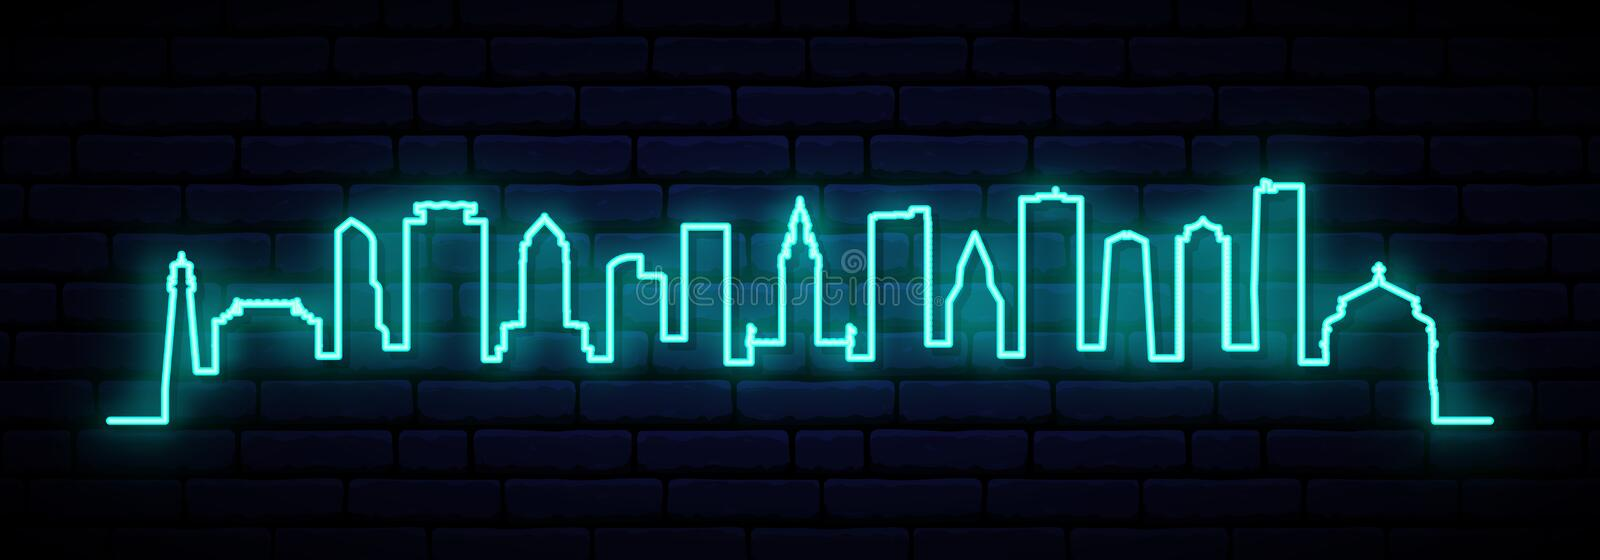 Blue neon skyline of Miami city. vector illustration